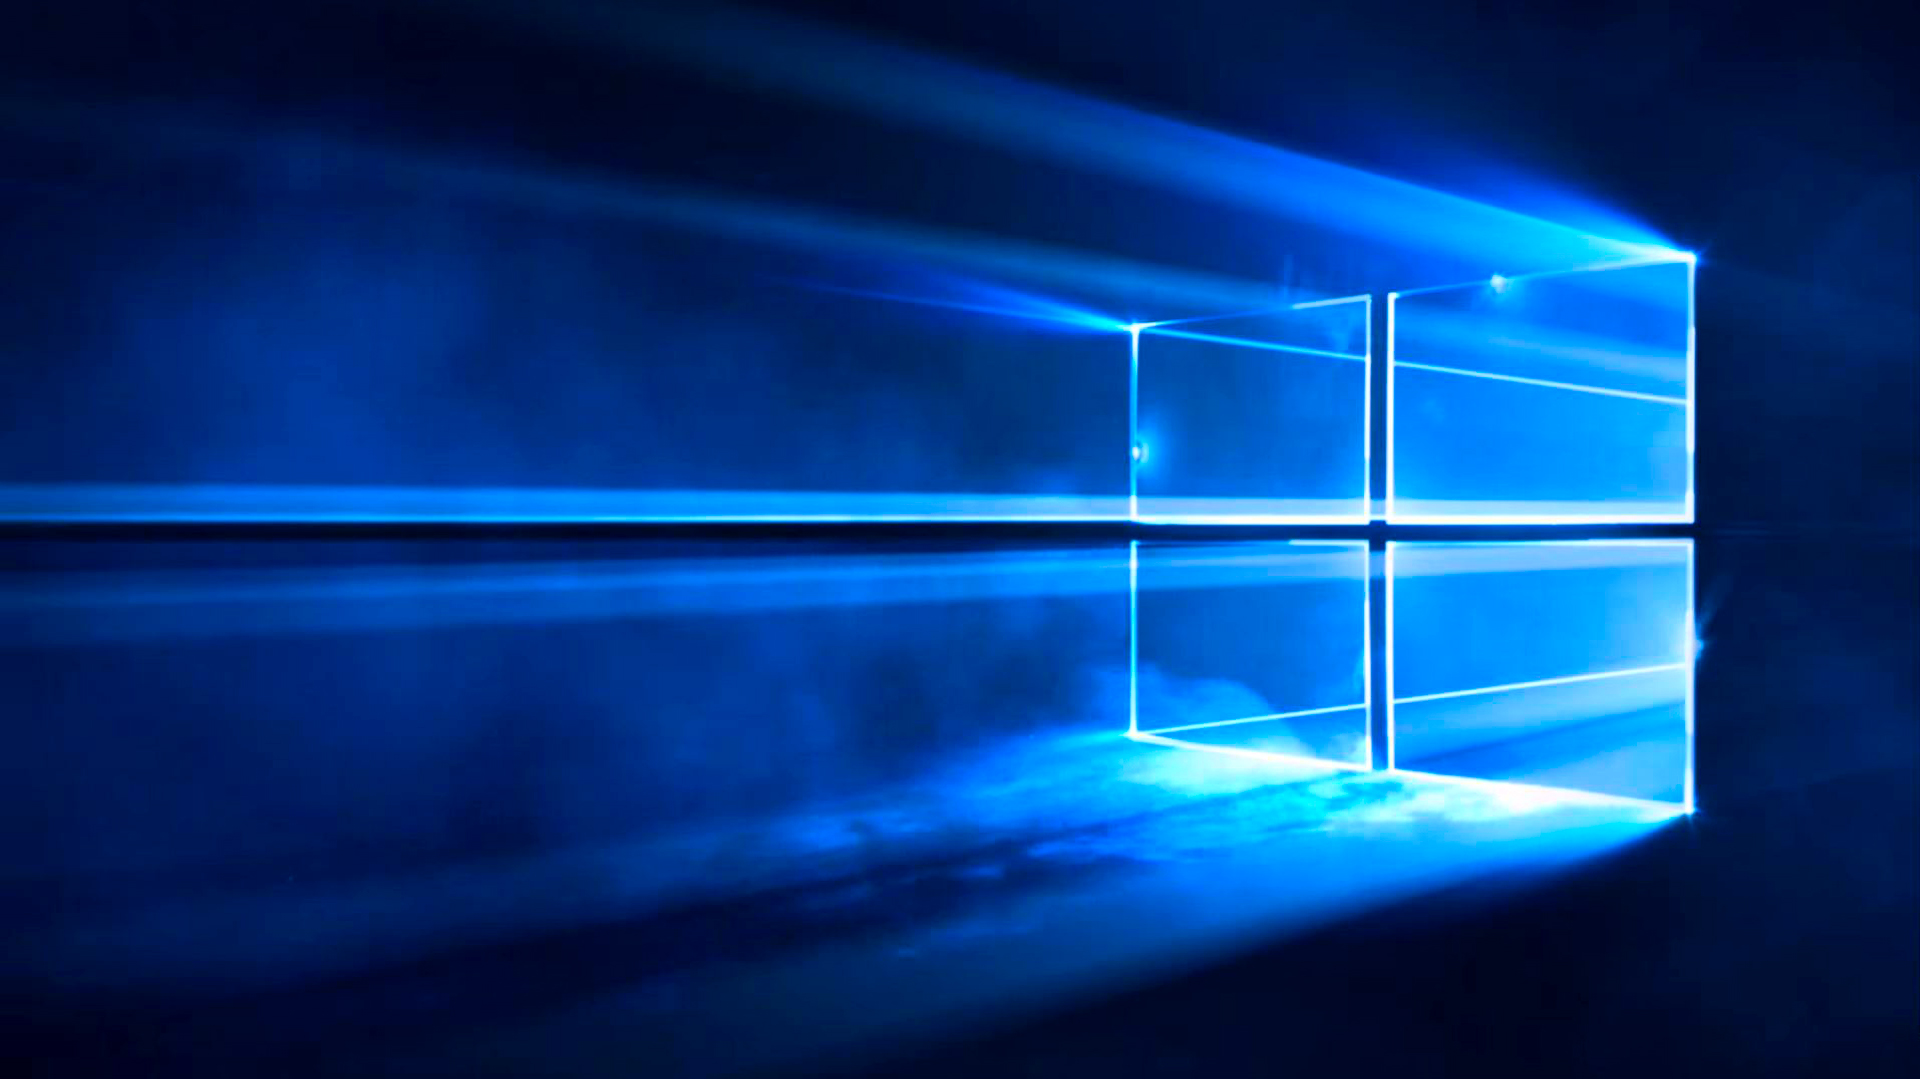 flash news windows 10 wallpaper aus licht wird magie